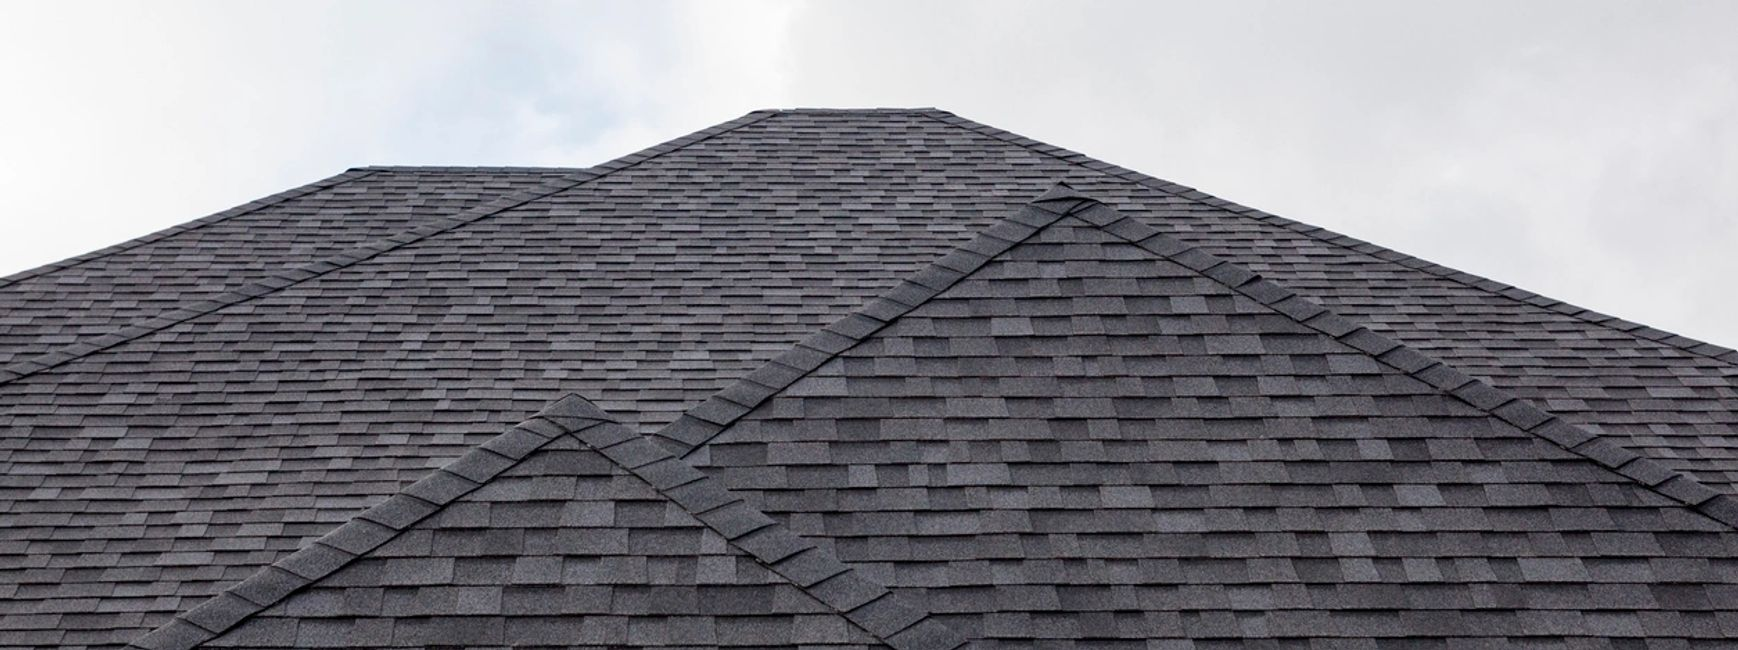 Roofing job in Fairview, TN with architectural shingles.